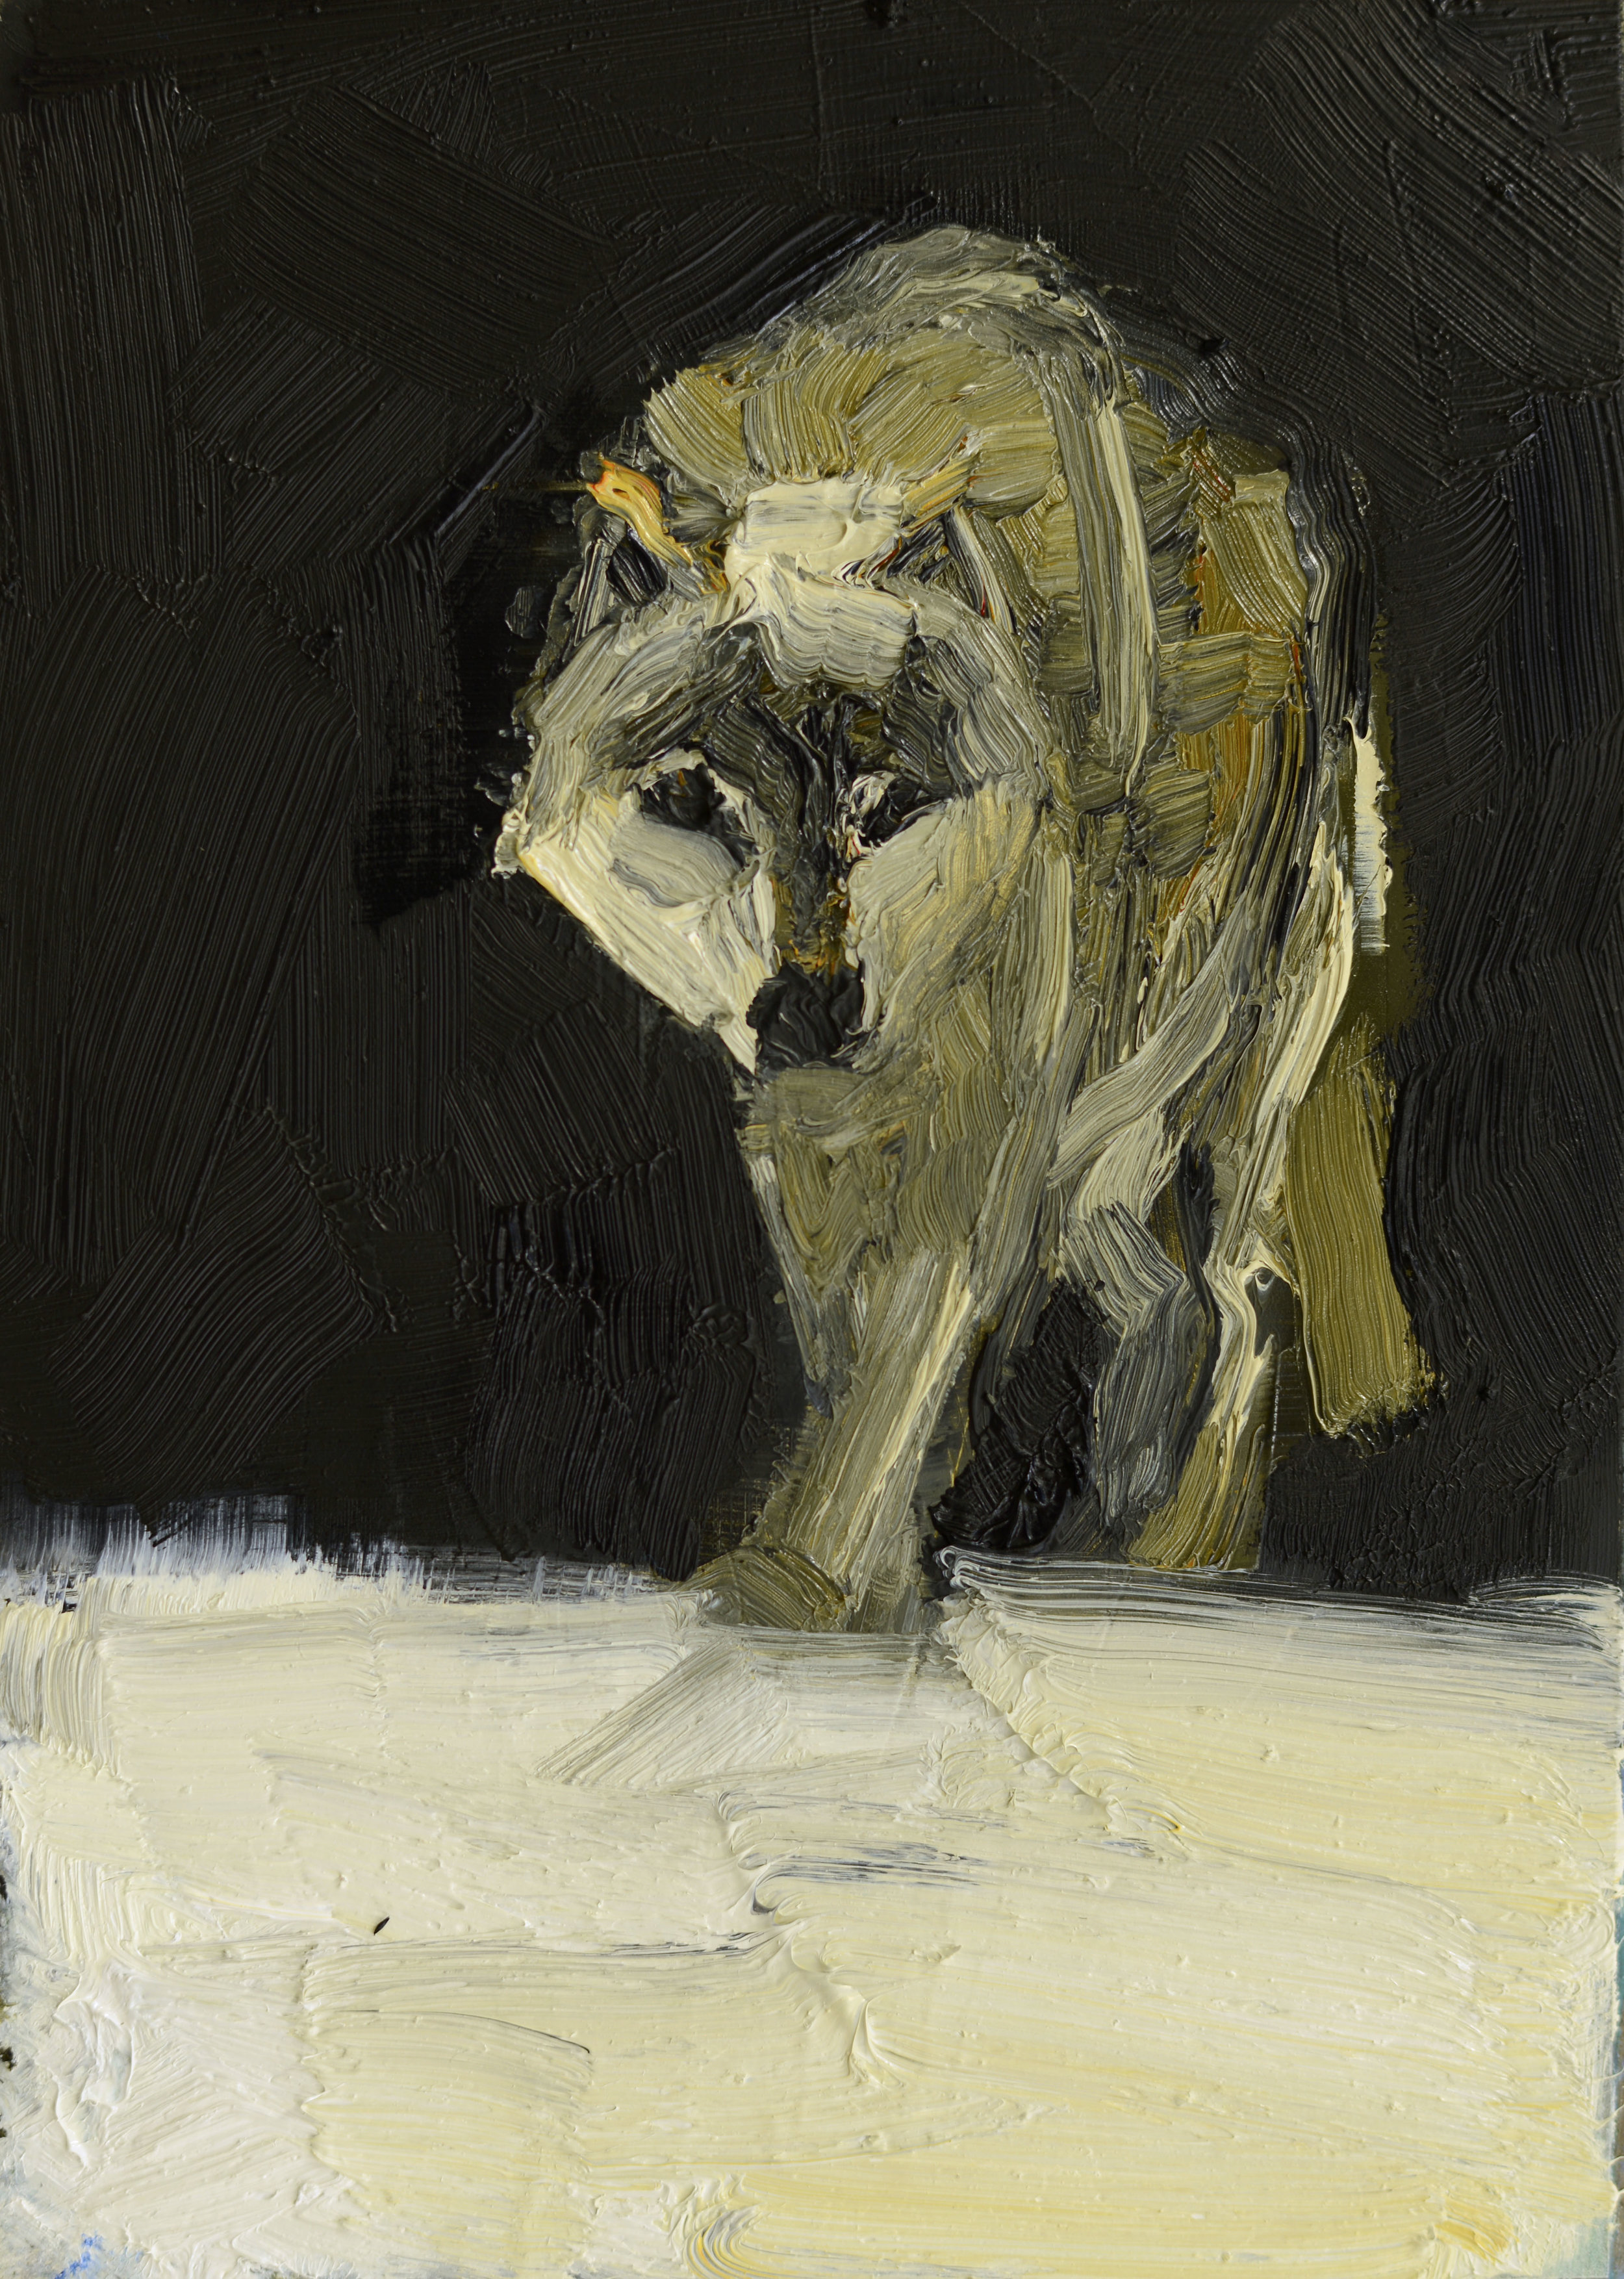 GREY WOLF   -PRIVATE COLLECTION-  7 x 5 inches  oil and wax on panel